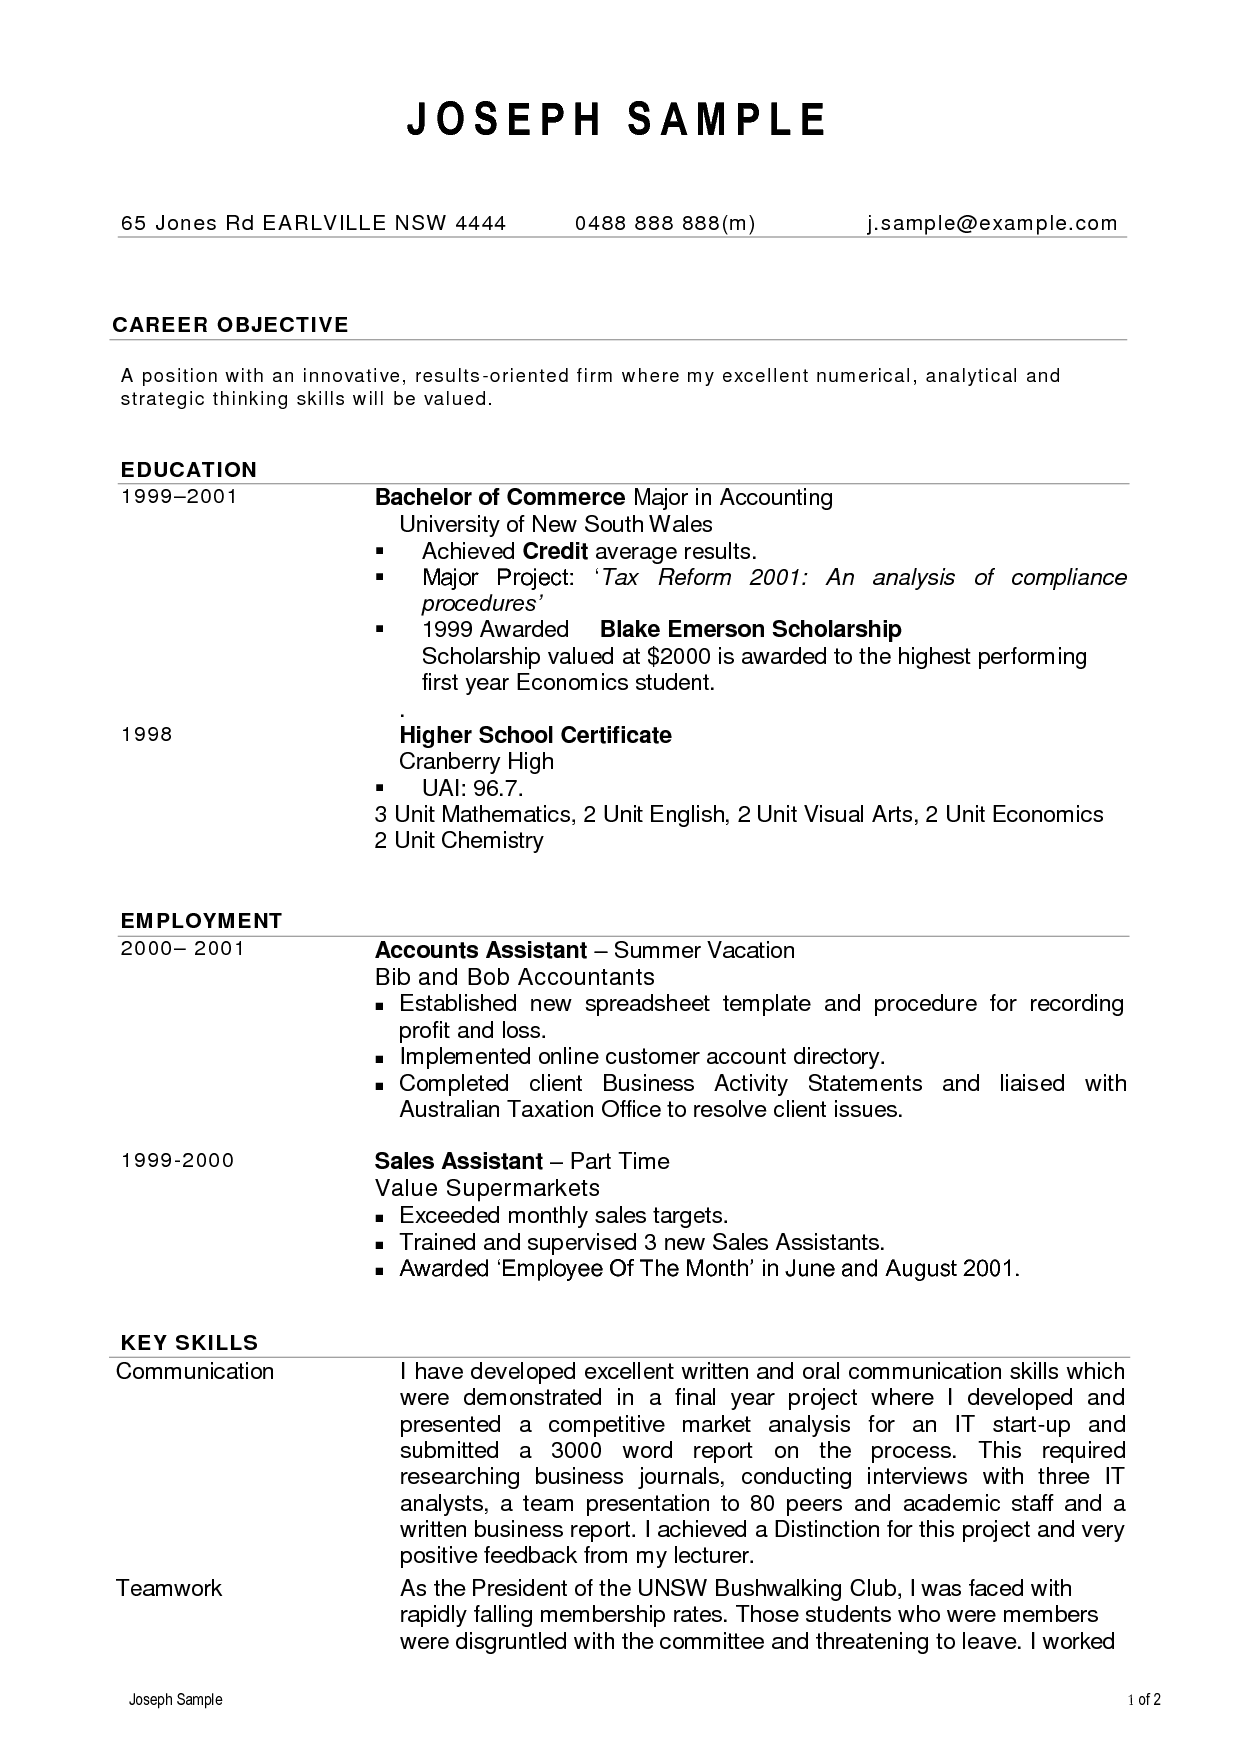 resume Effective Resumes effective resume formats template pinterest format formats